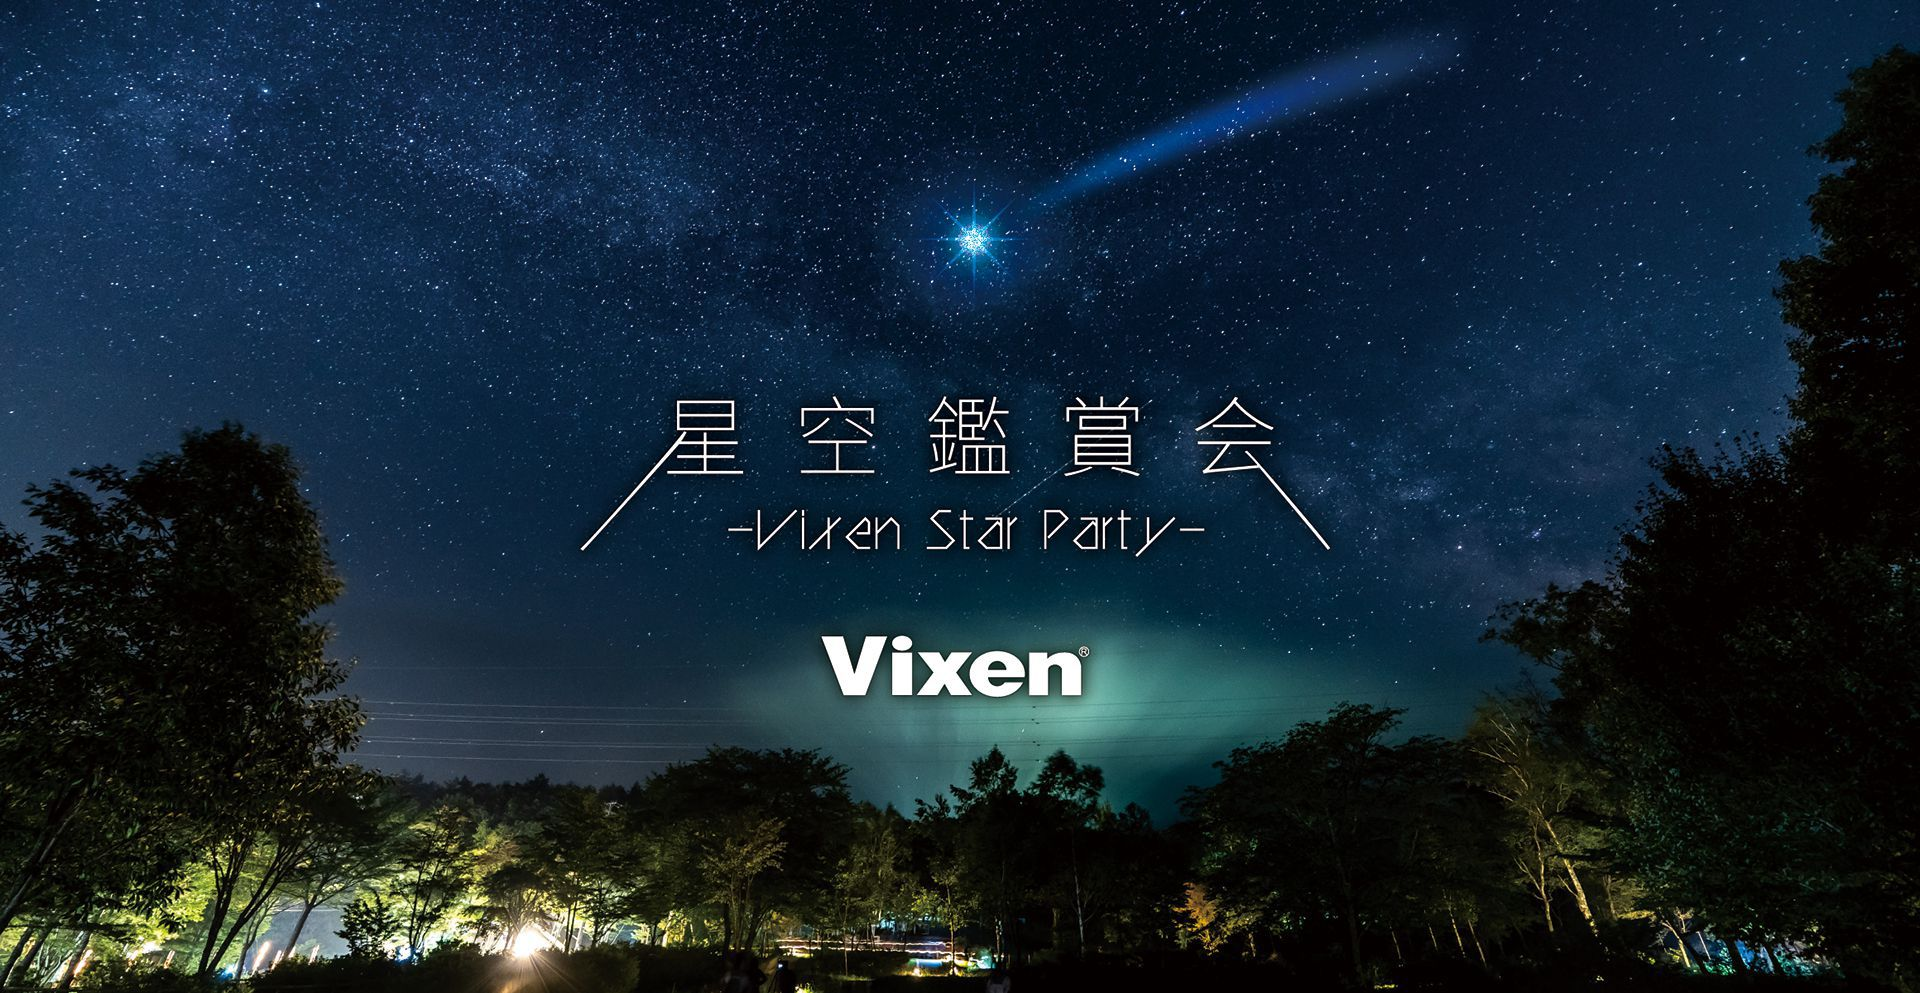 星空鑑賞会-Vixen Star Party-